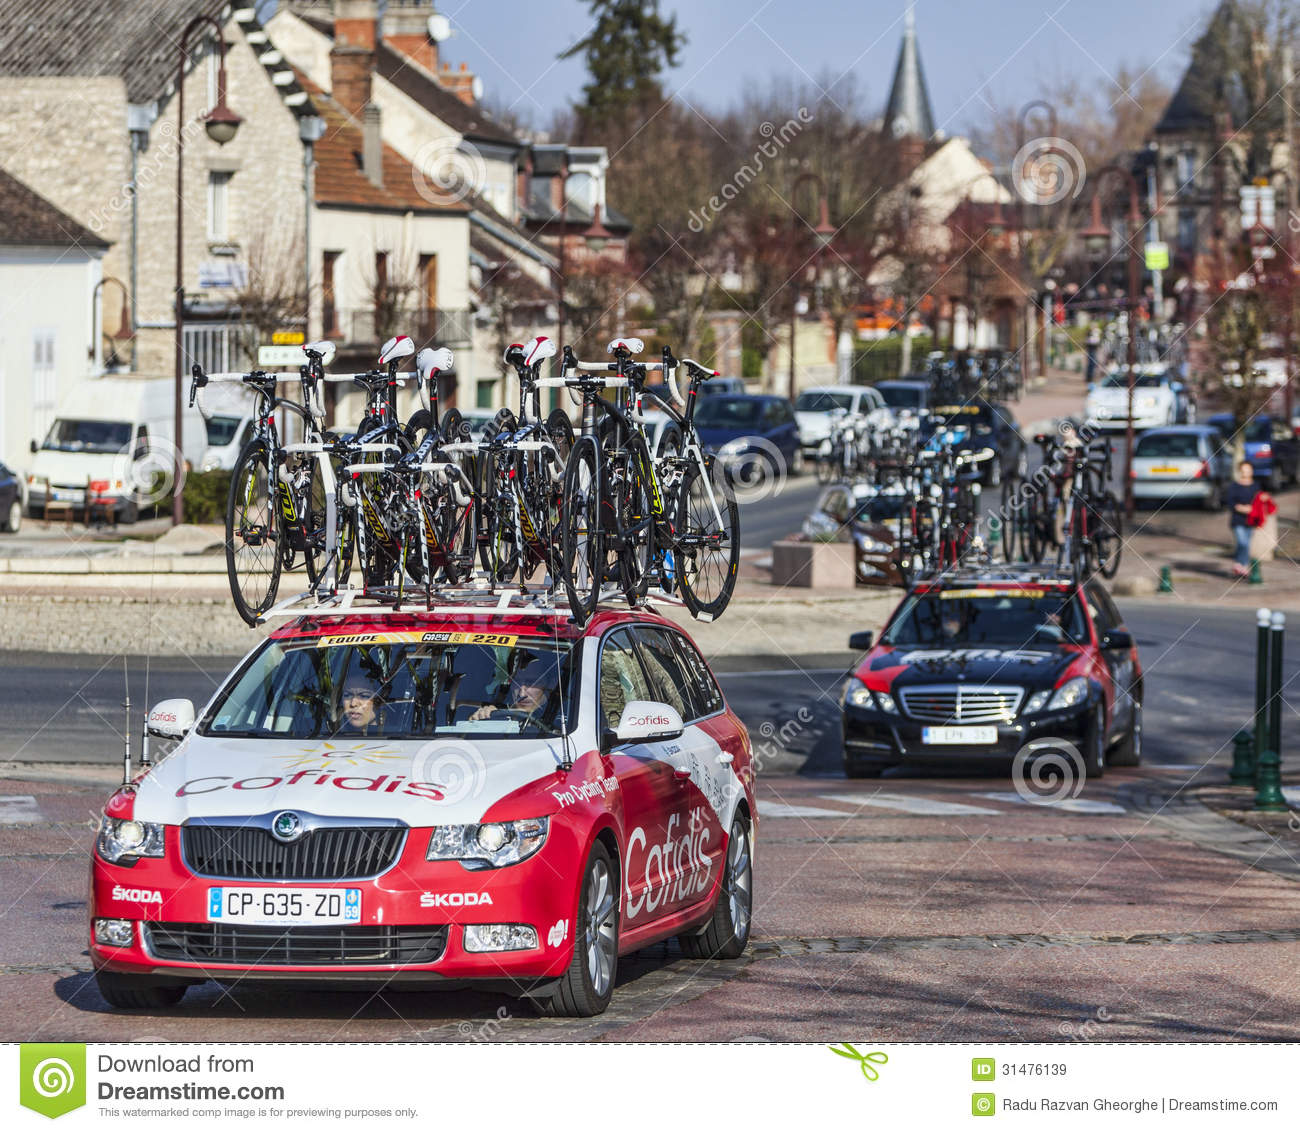 row of technical teams cars paris nice 2013 editorial stock image image 31476139. Black Bedroom Furniture Sets. Home Design Ideas